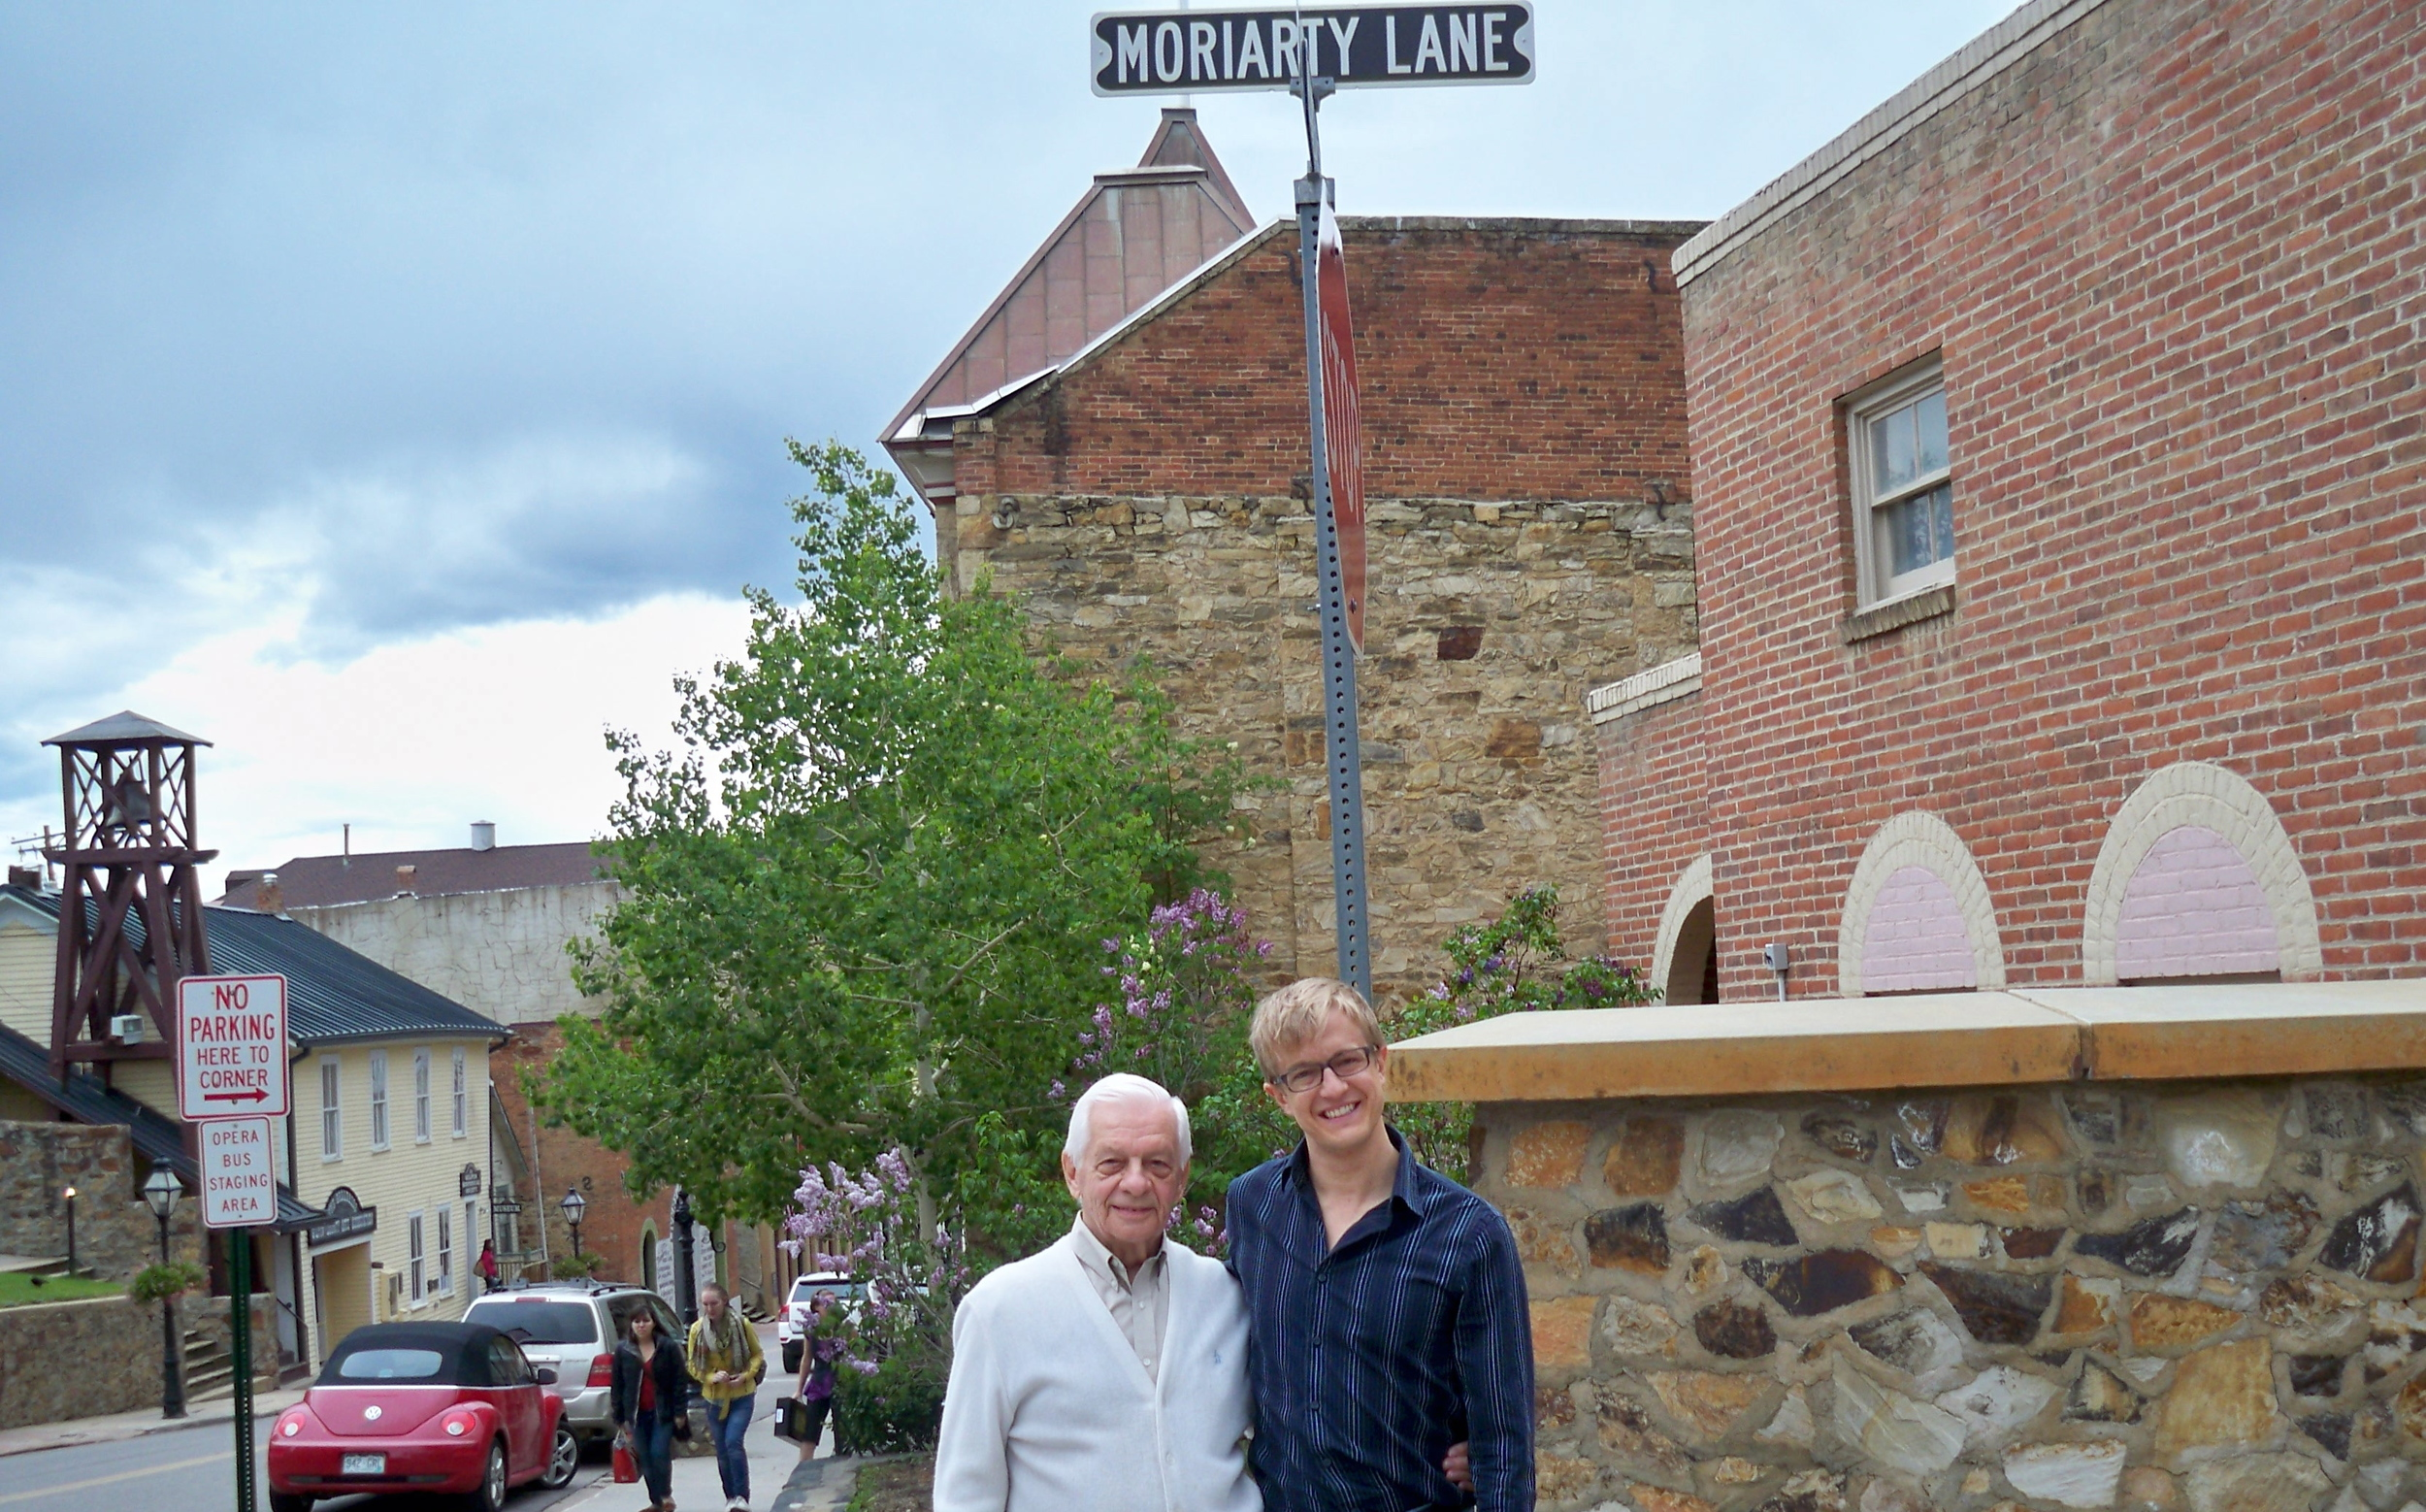 """With conductor, pianist, author, linguist extraordinaire and fellow Francophile John Moriarty, Artistic Director Emeritus of Central City Opera, on his eponymous """"Moriarty Lane"""" in Central City, Colorado."""